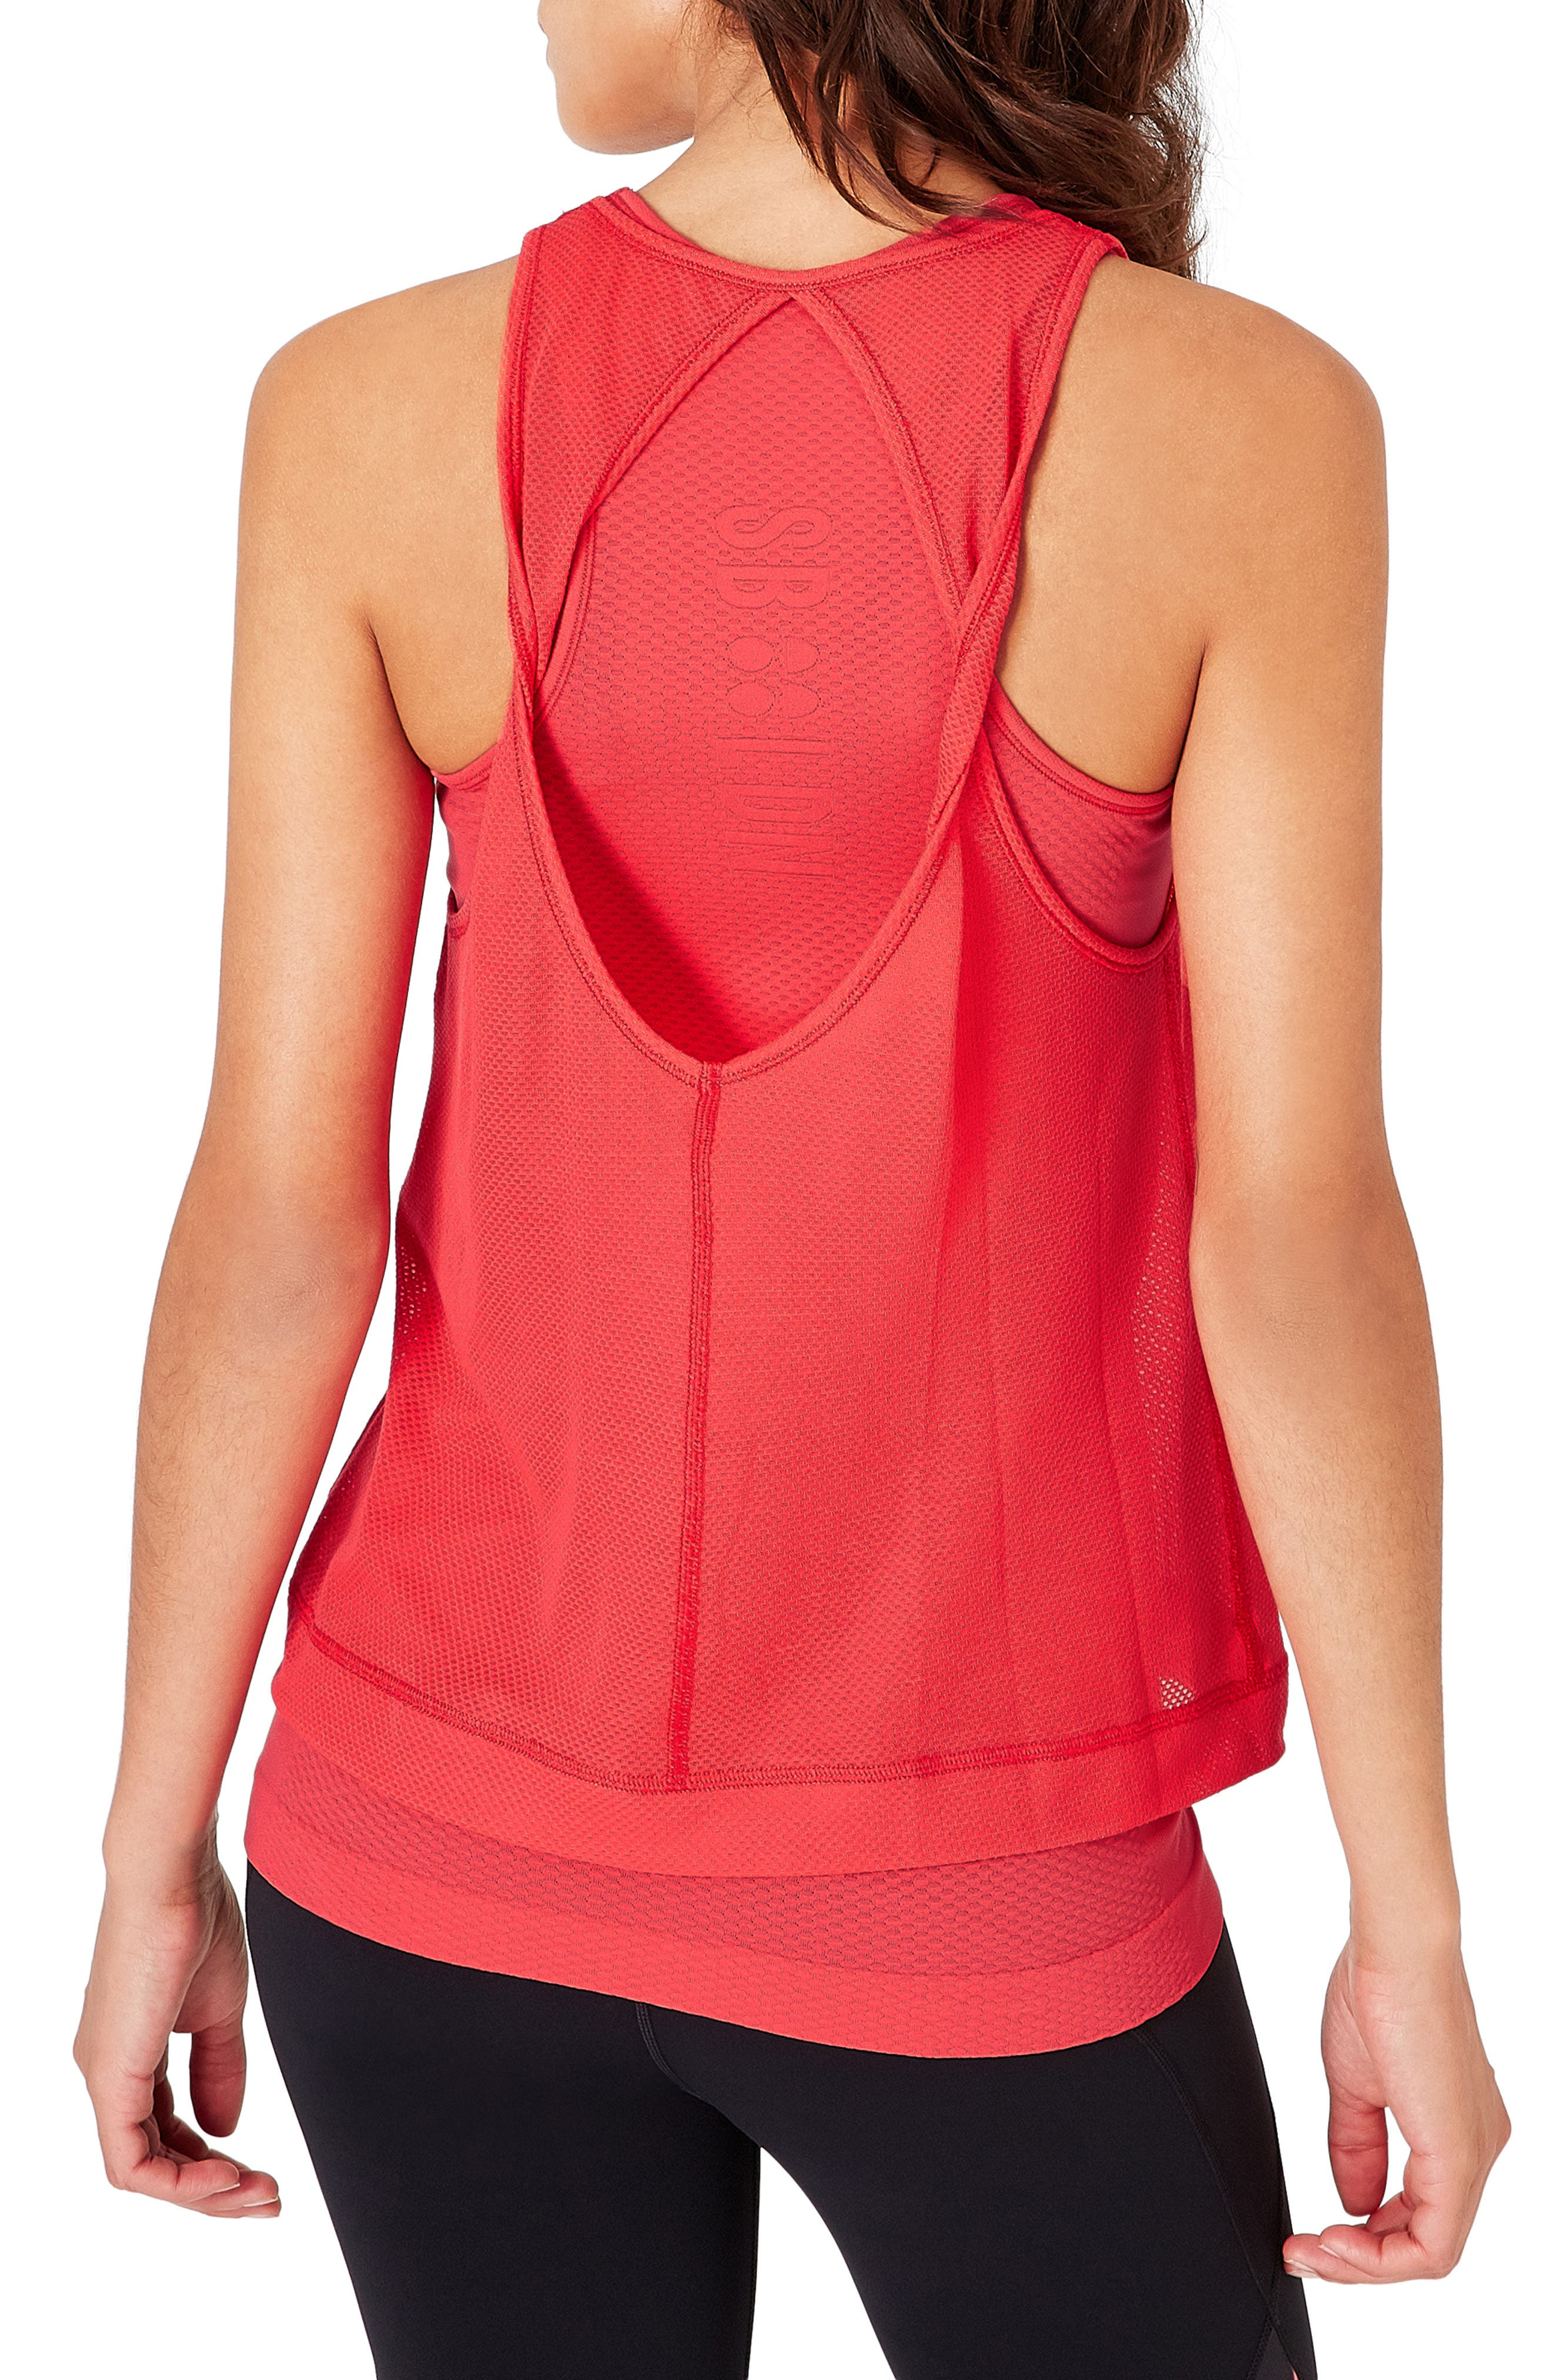 SWEATY BETTY,                             Double Time Seamless Tank,                             Alternate thumbnail 2, color,                             TULIP RED